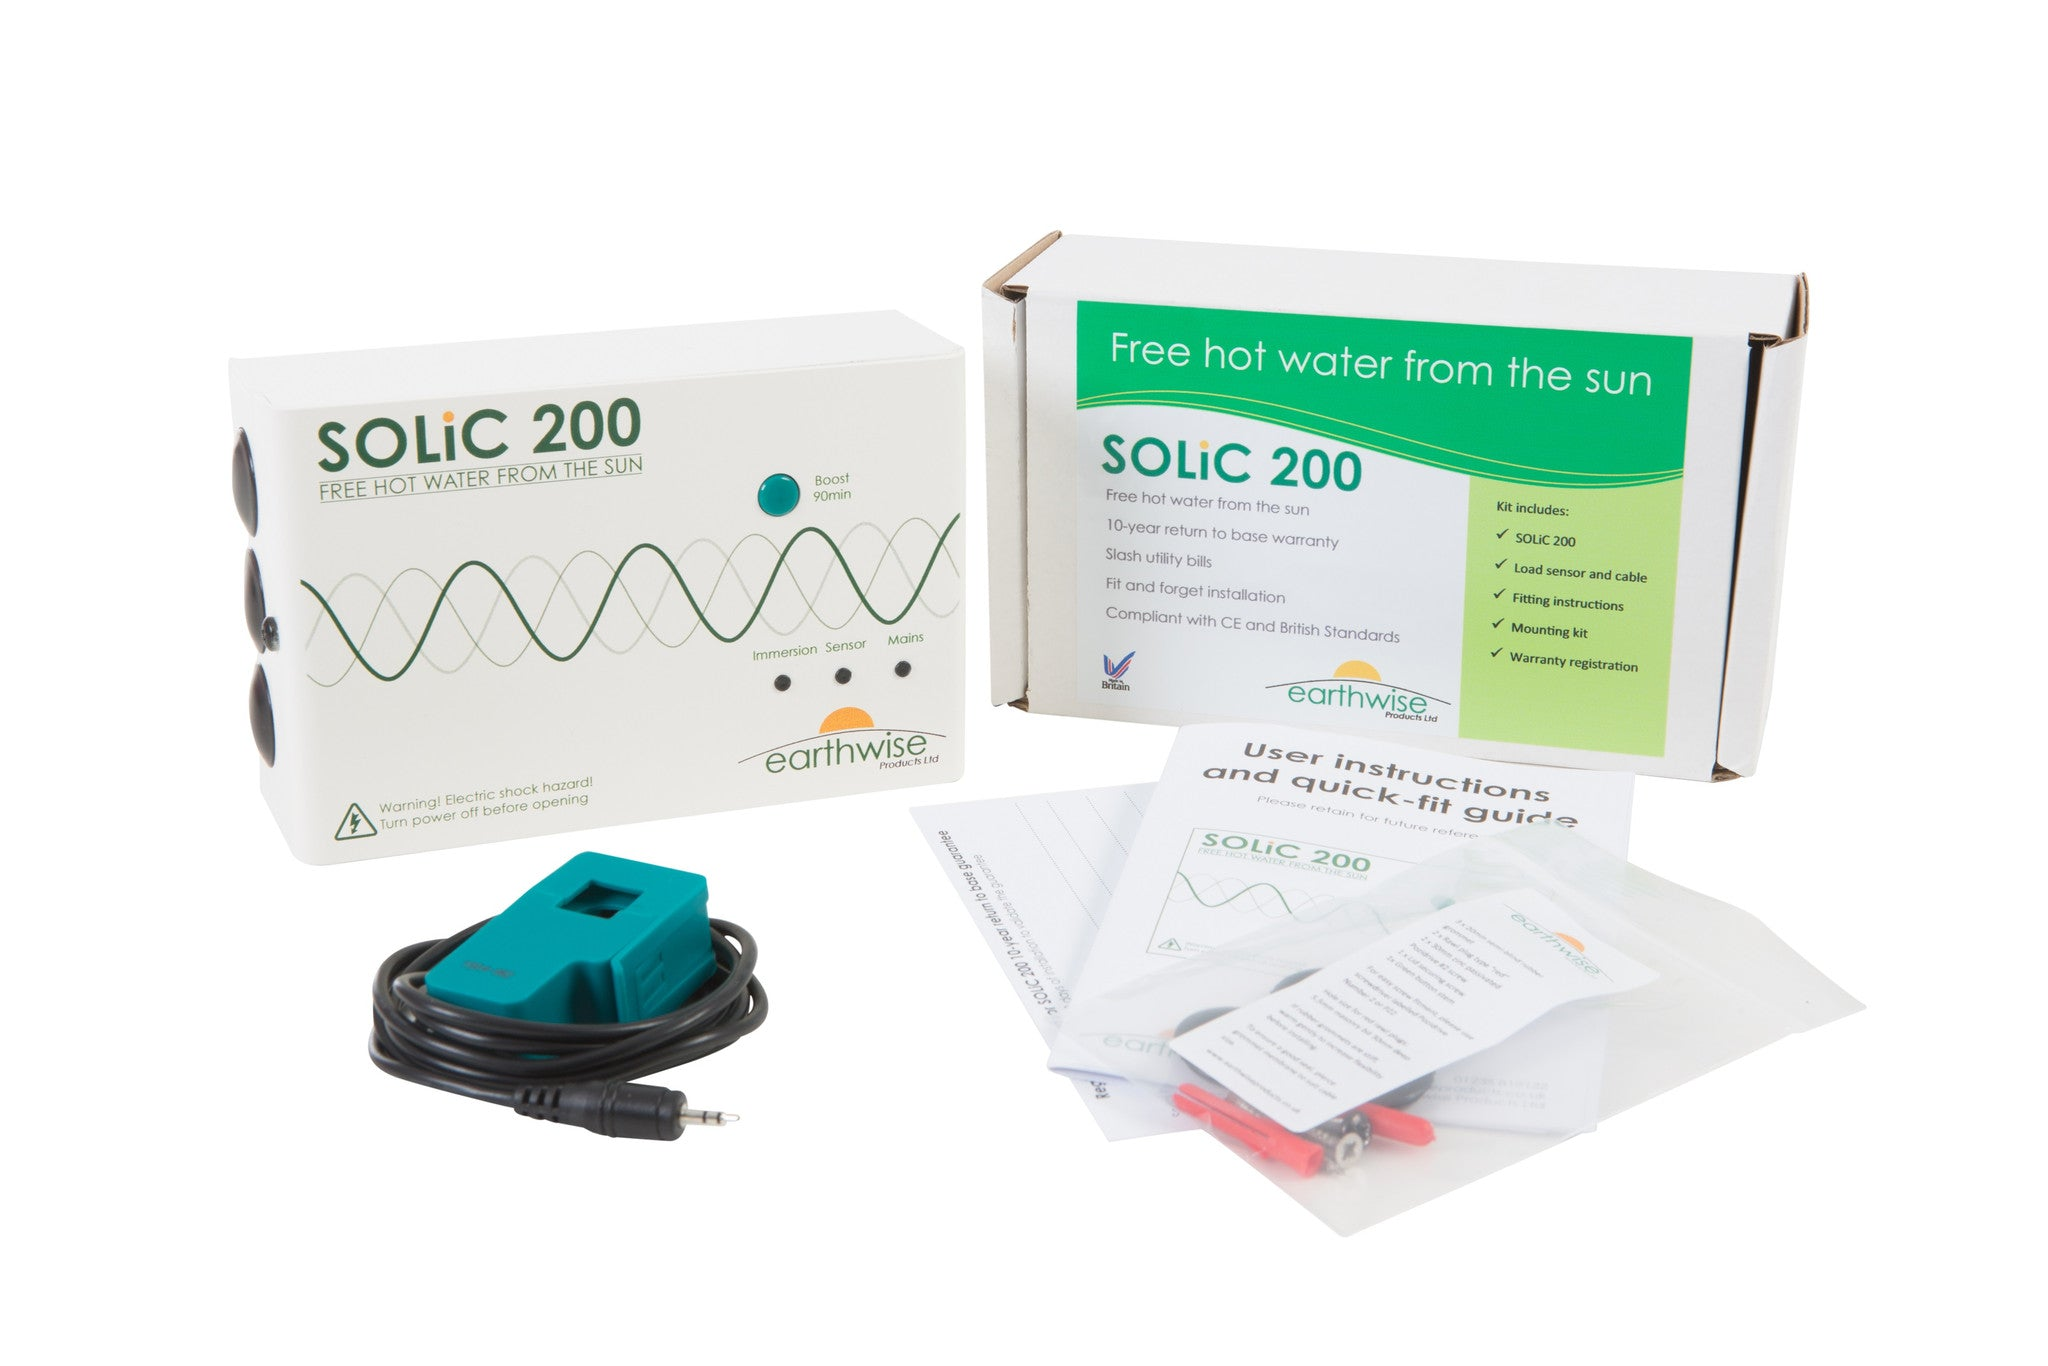 SOLiC_complete_pack?v=1466531704 solic 200 solar immersion controller ecoharmony solic 200 wiring diagram at virtualis.co